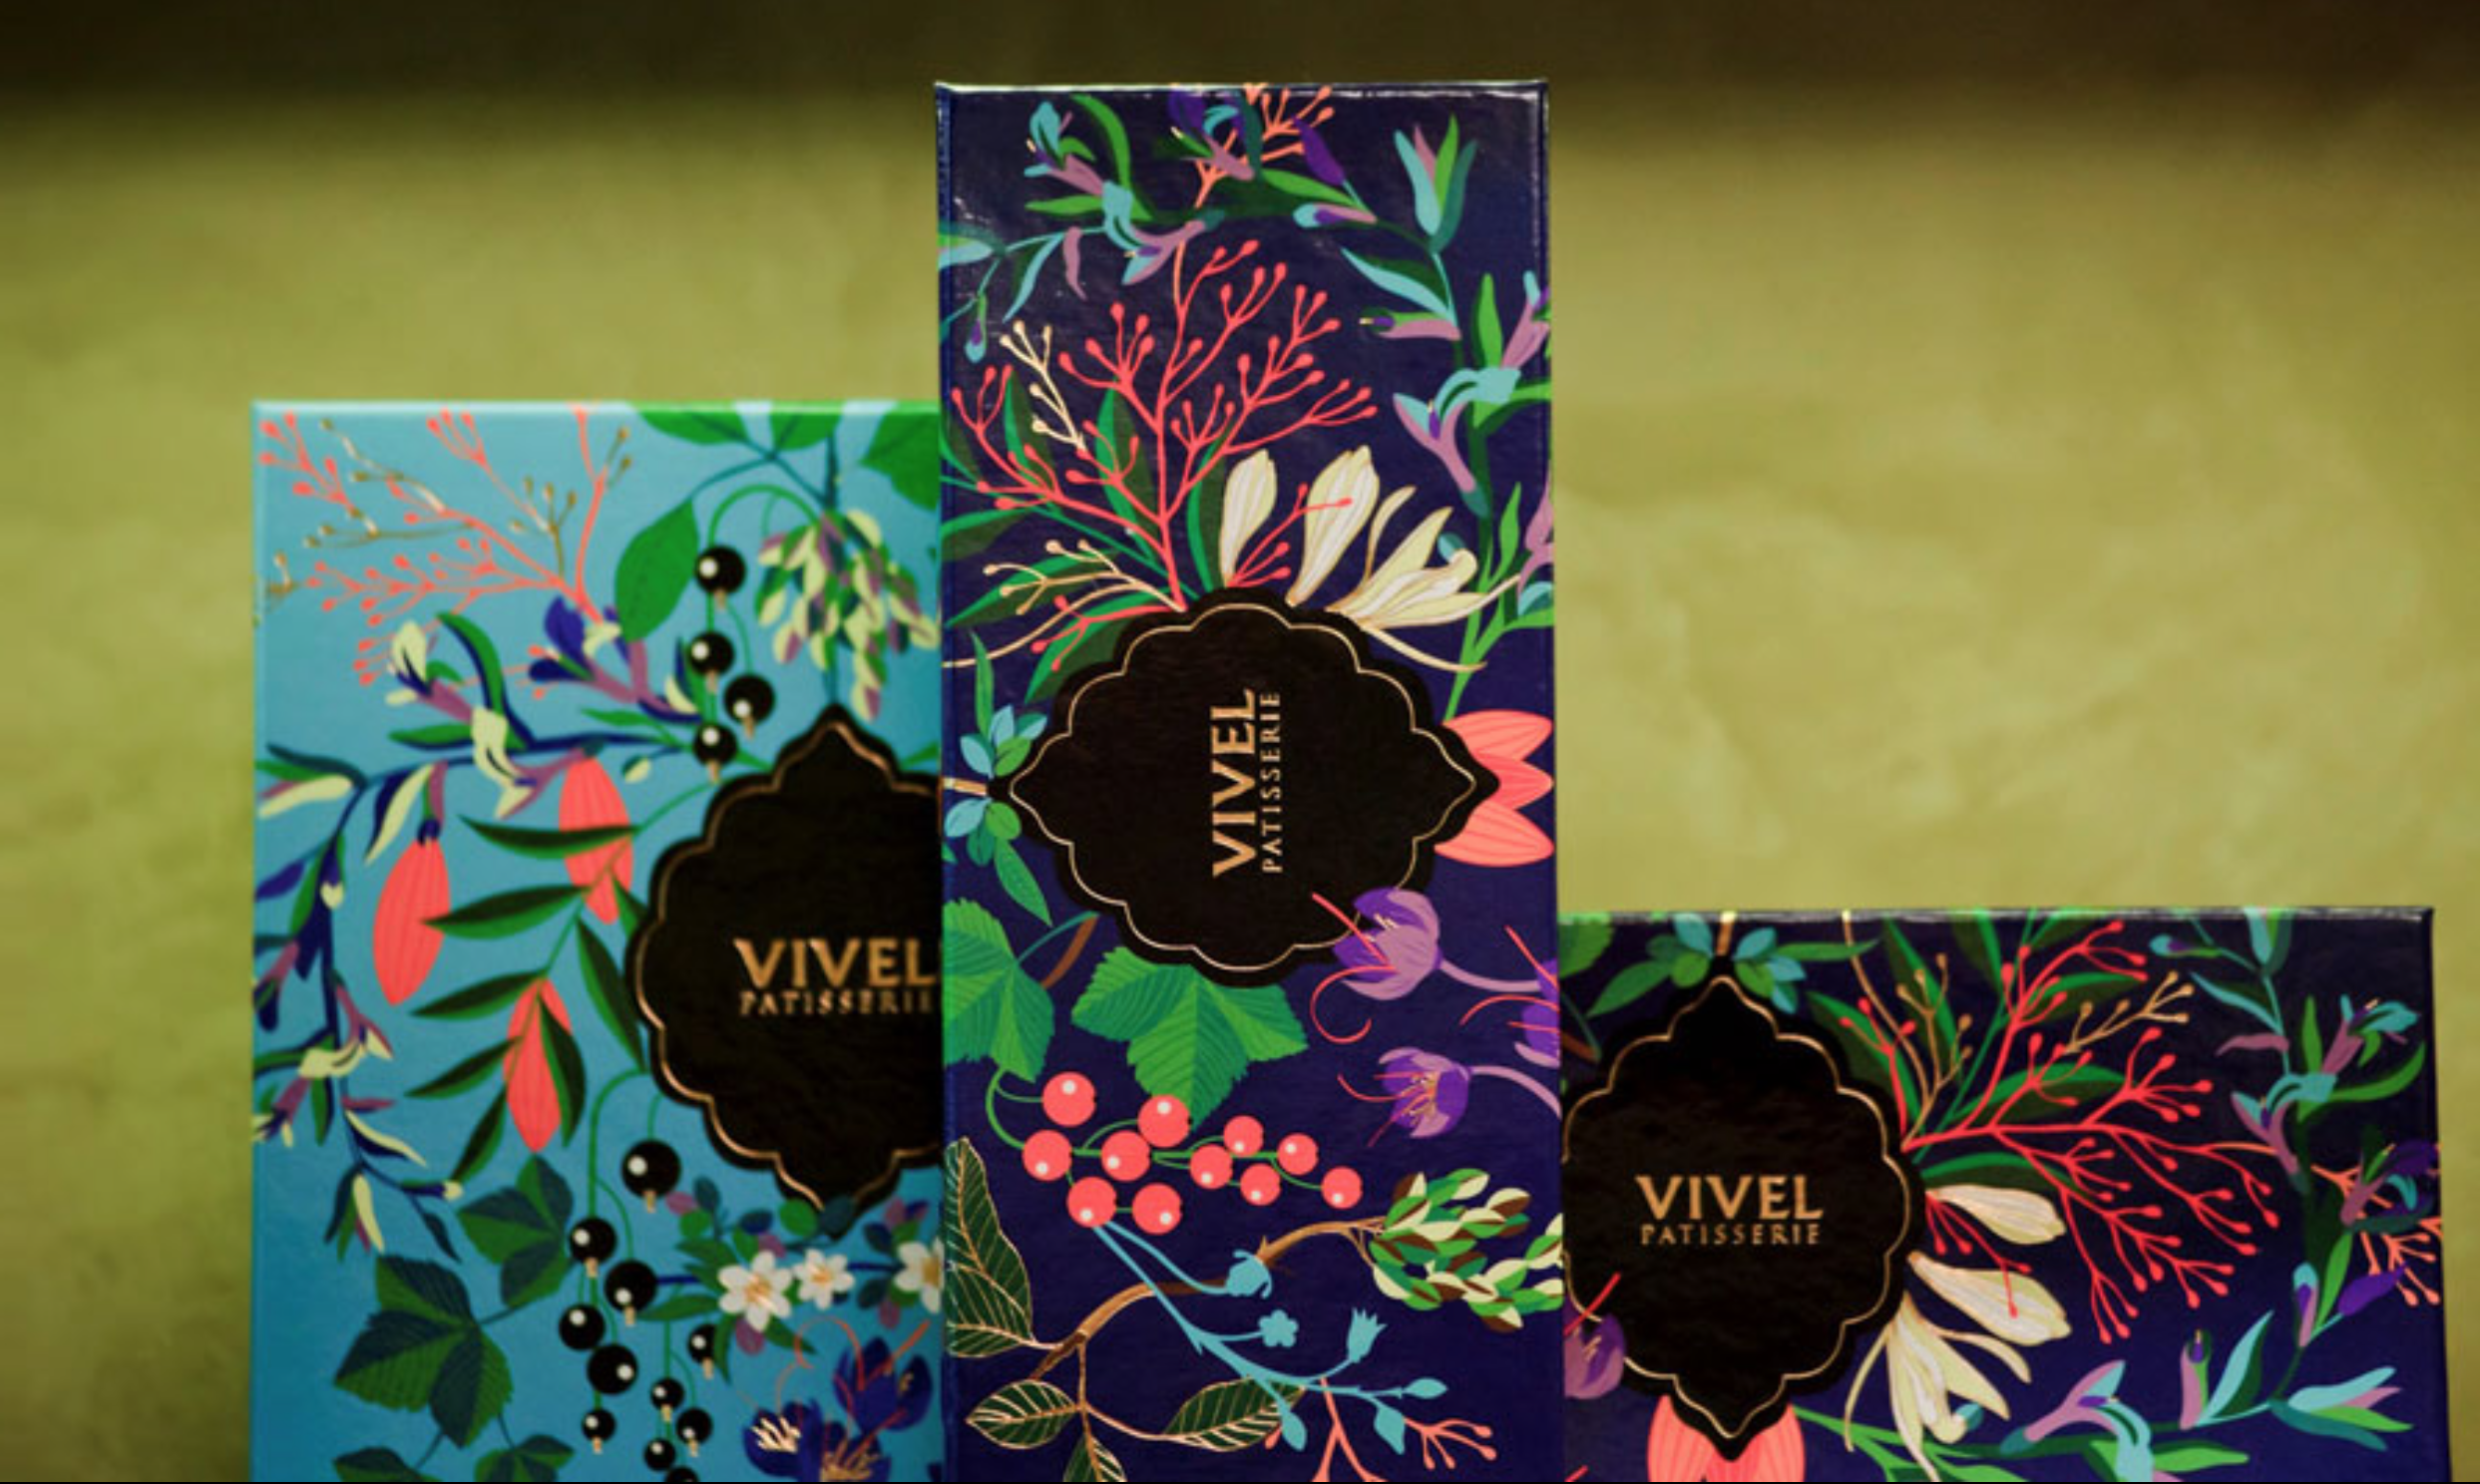 Vivel Pastisserie Packaging Design